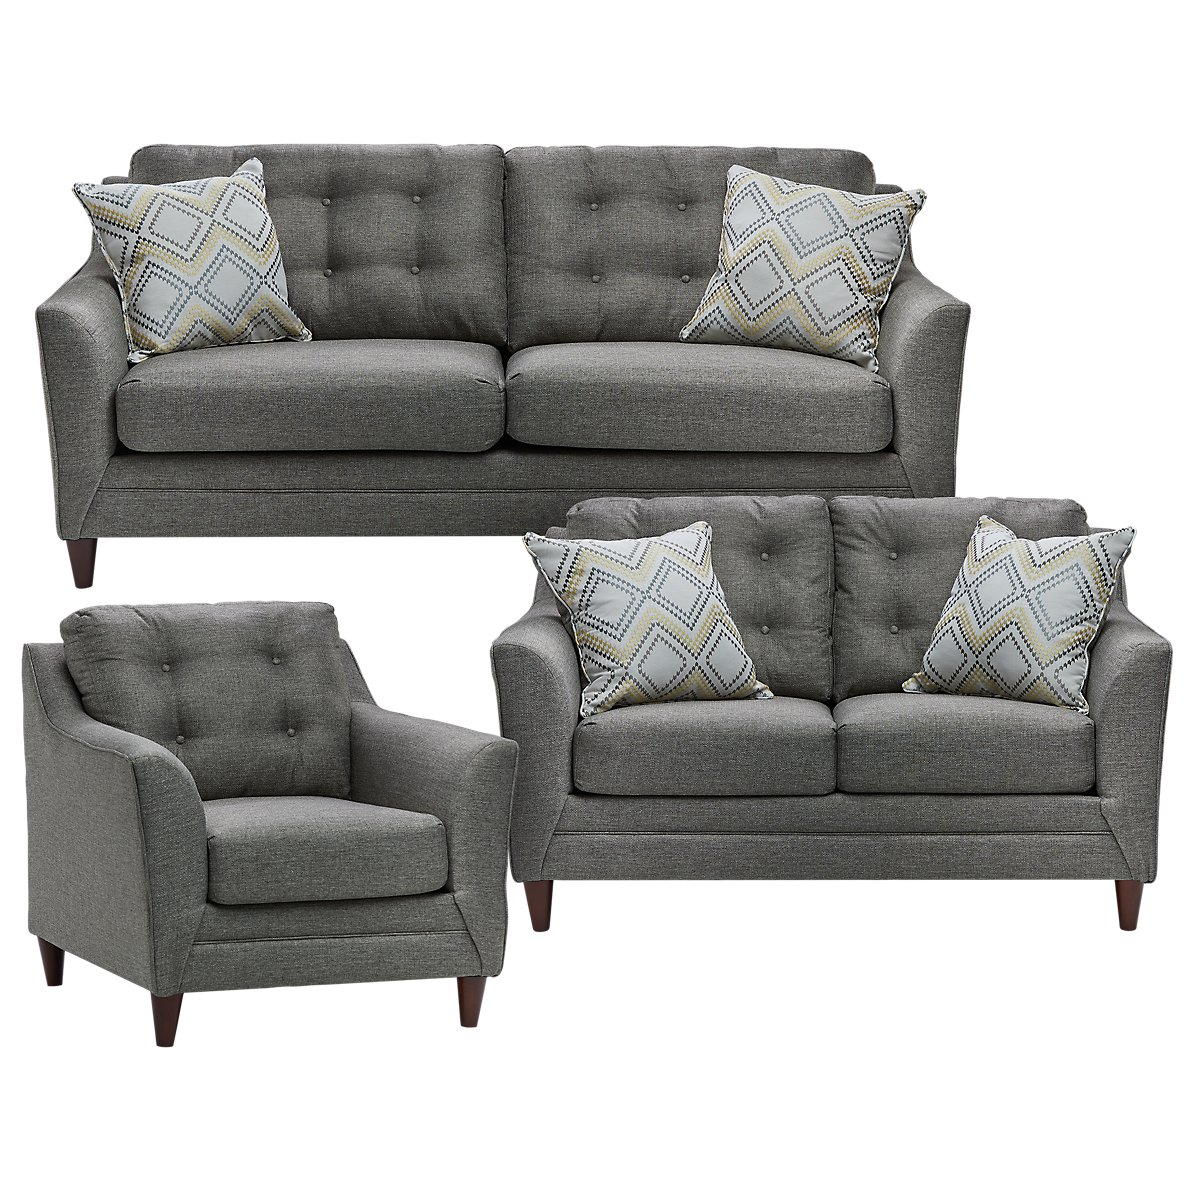 Jensen Fabric Sofa Bed Review Home Co